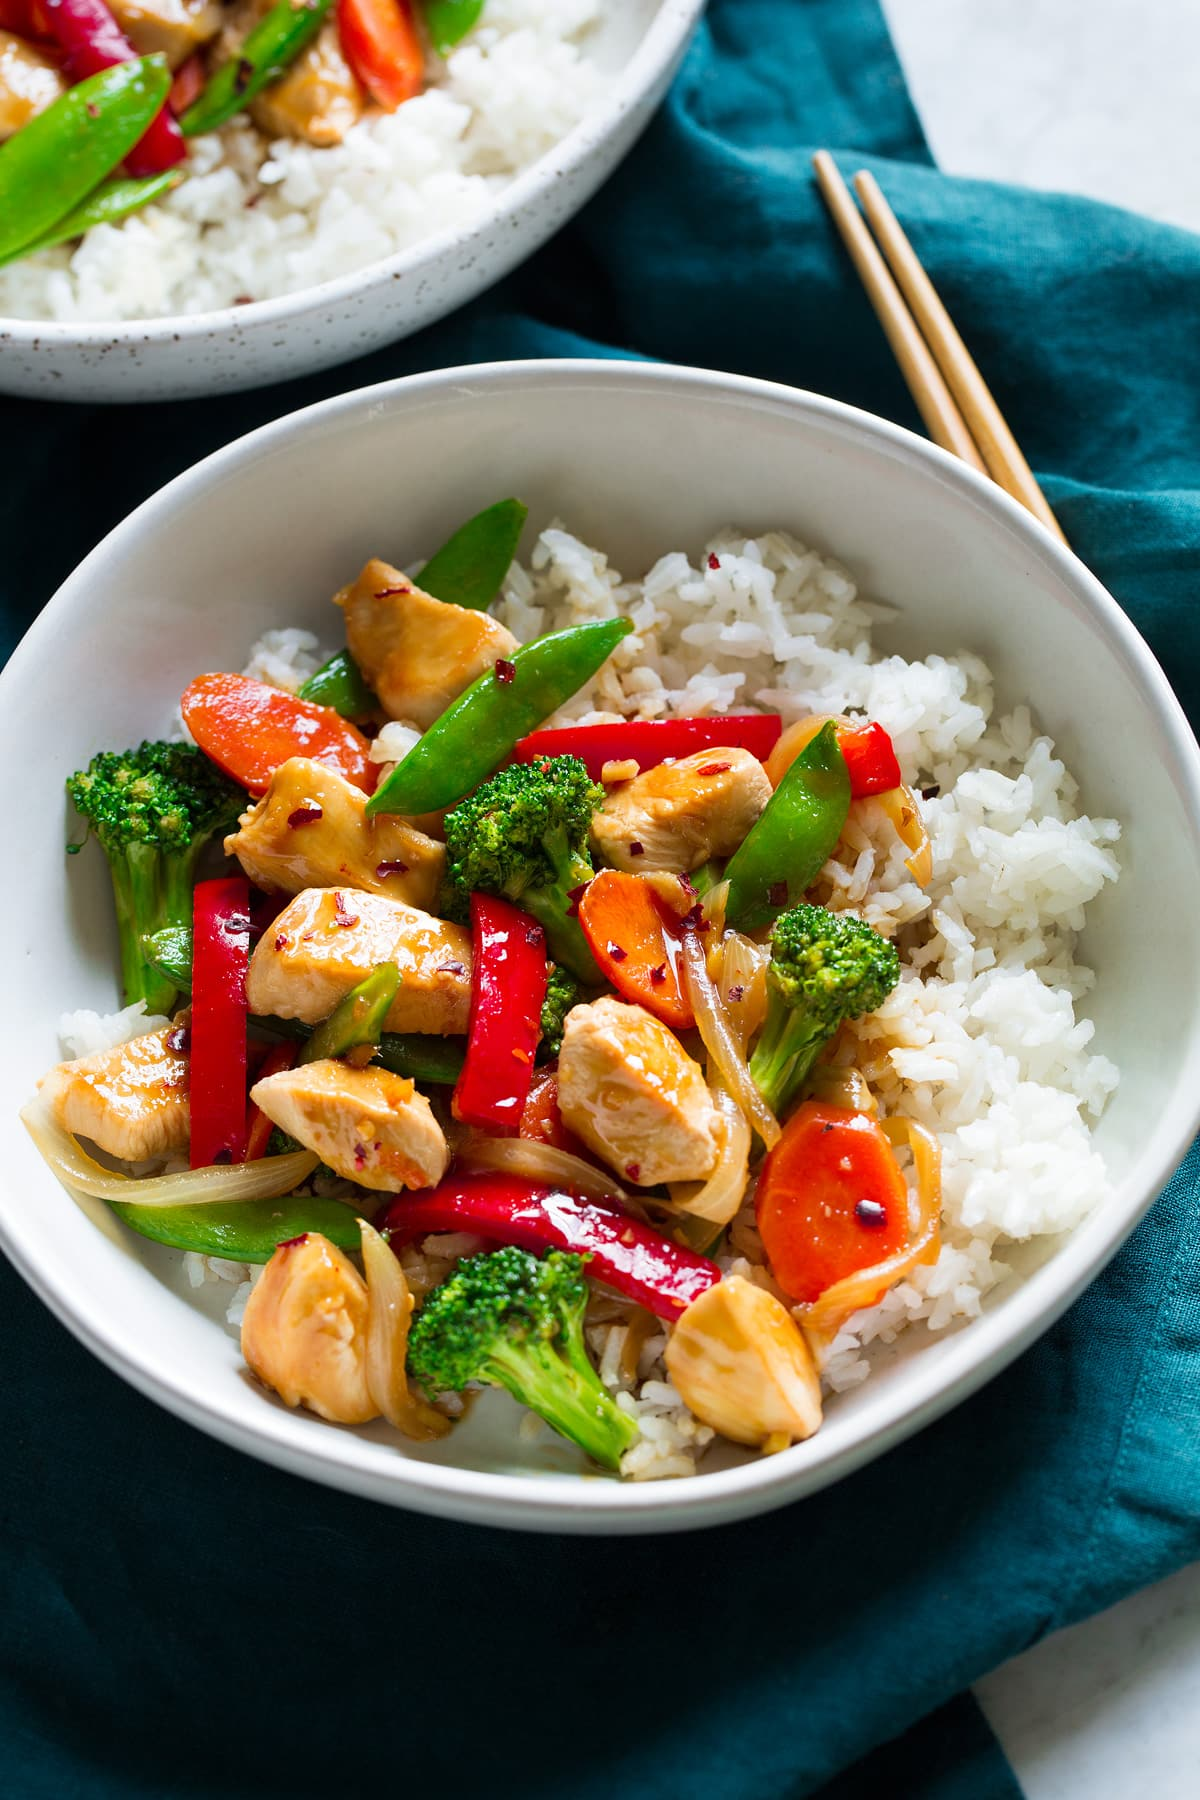 Chicken and vegetable stir fry on white rice in a bowl.